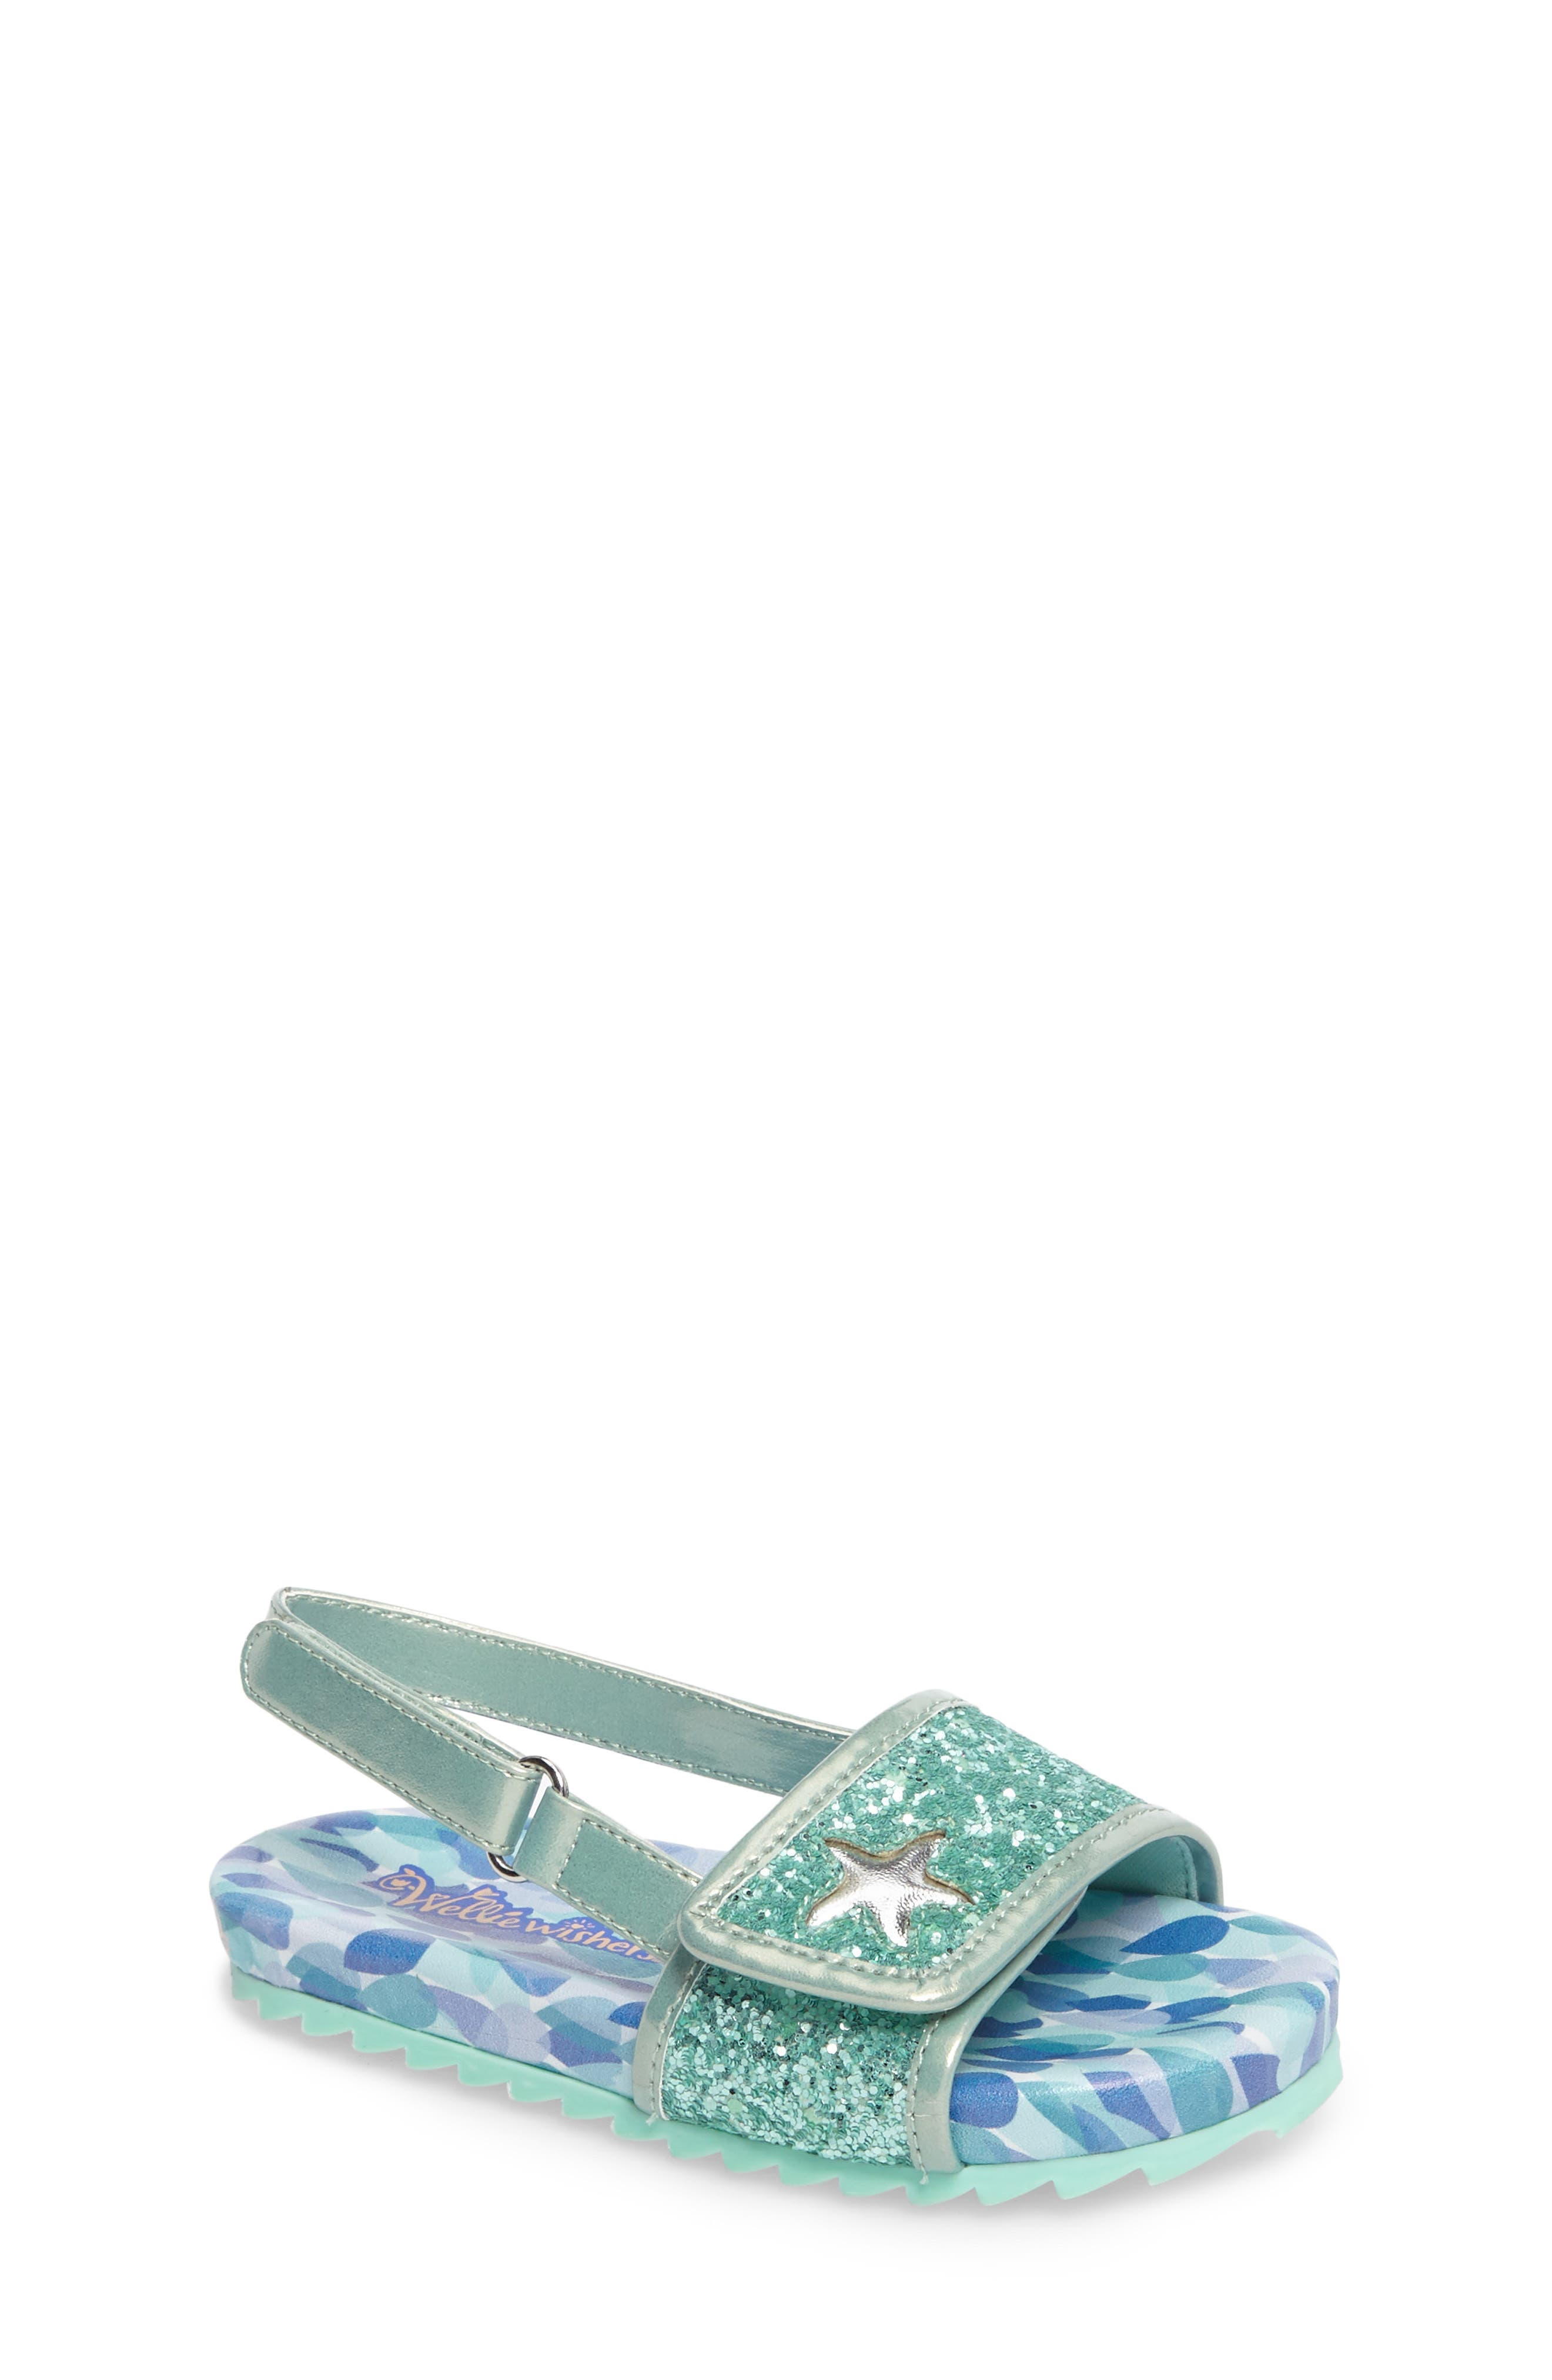 WELLIEWISHERS FROM AMERICAN GIRL,                             Camille Raindrop Strap Sandal,                             Main thumbnail 1, color,                             300